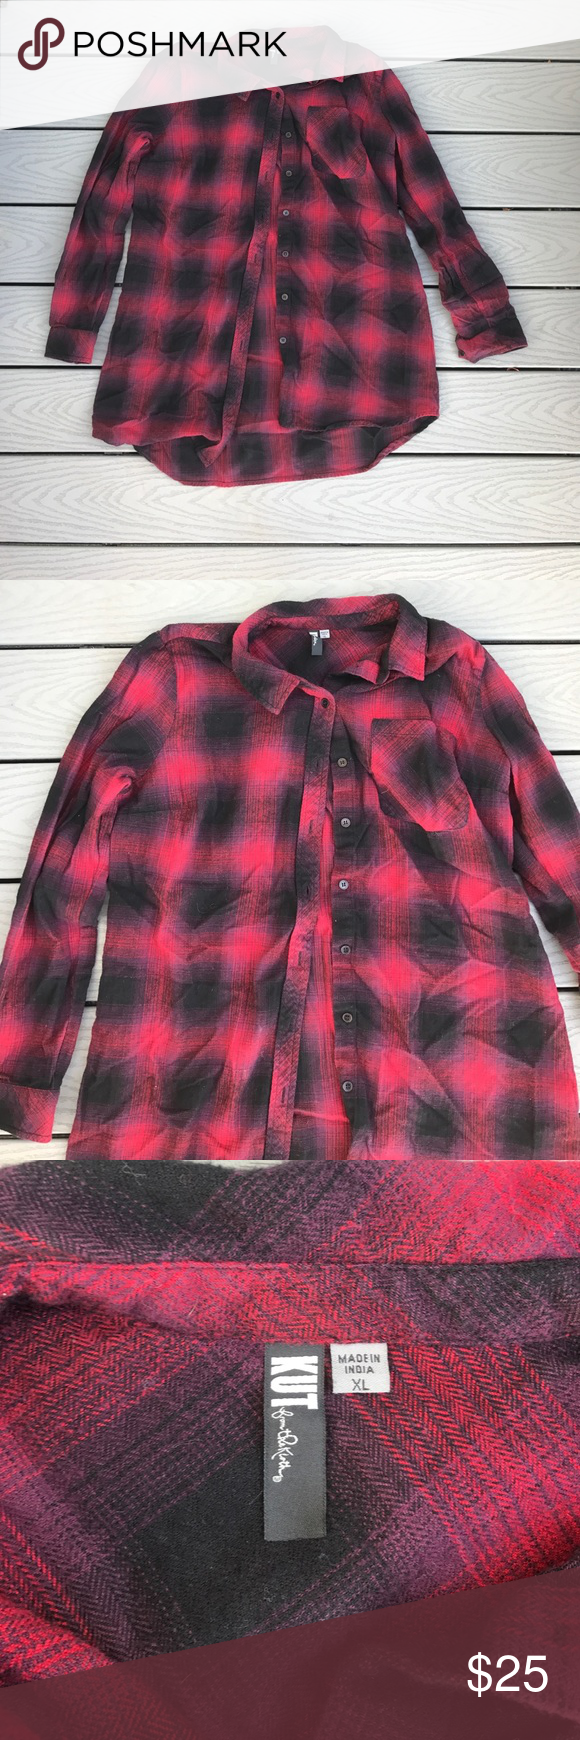 Red flannel shirts  NWOT Kut from the Kloth redublack flannel shirt